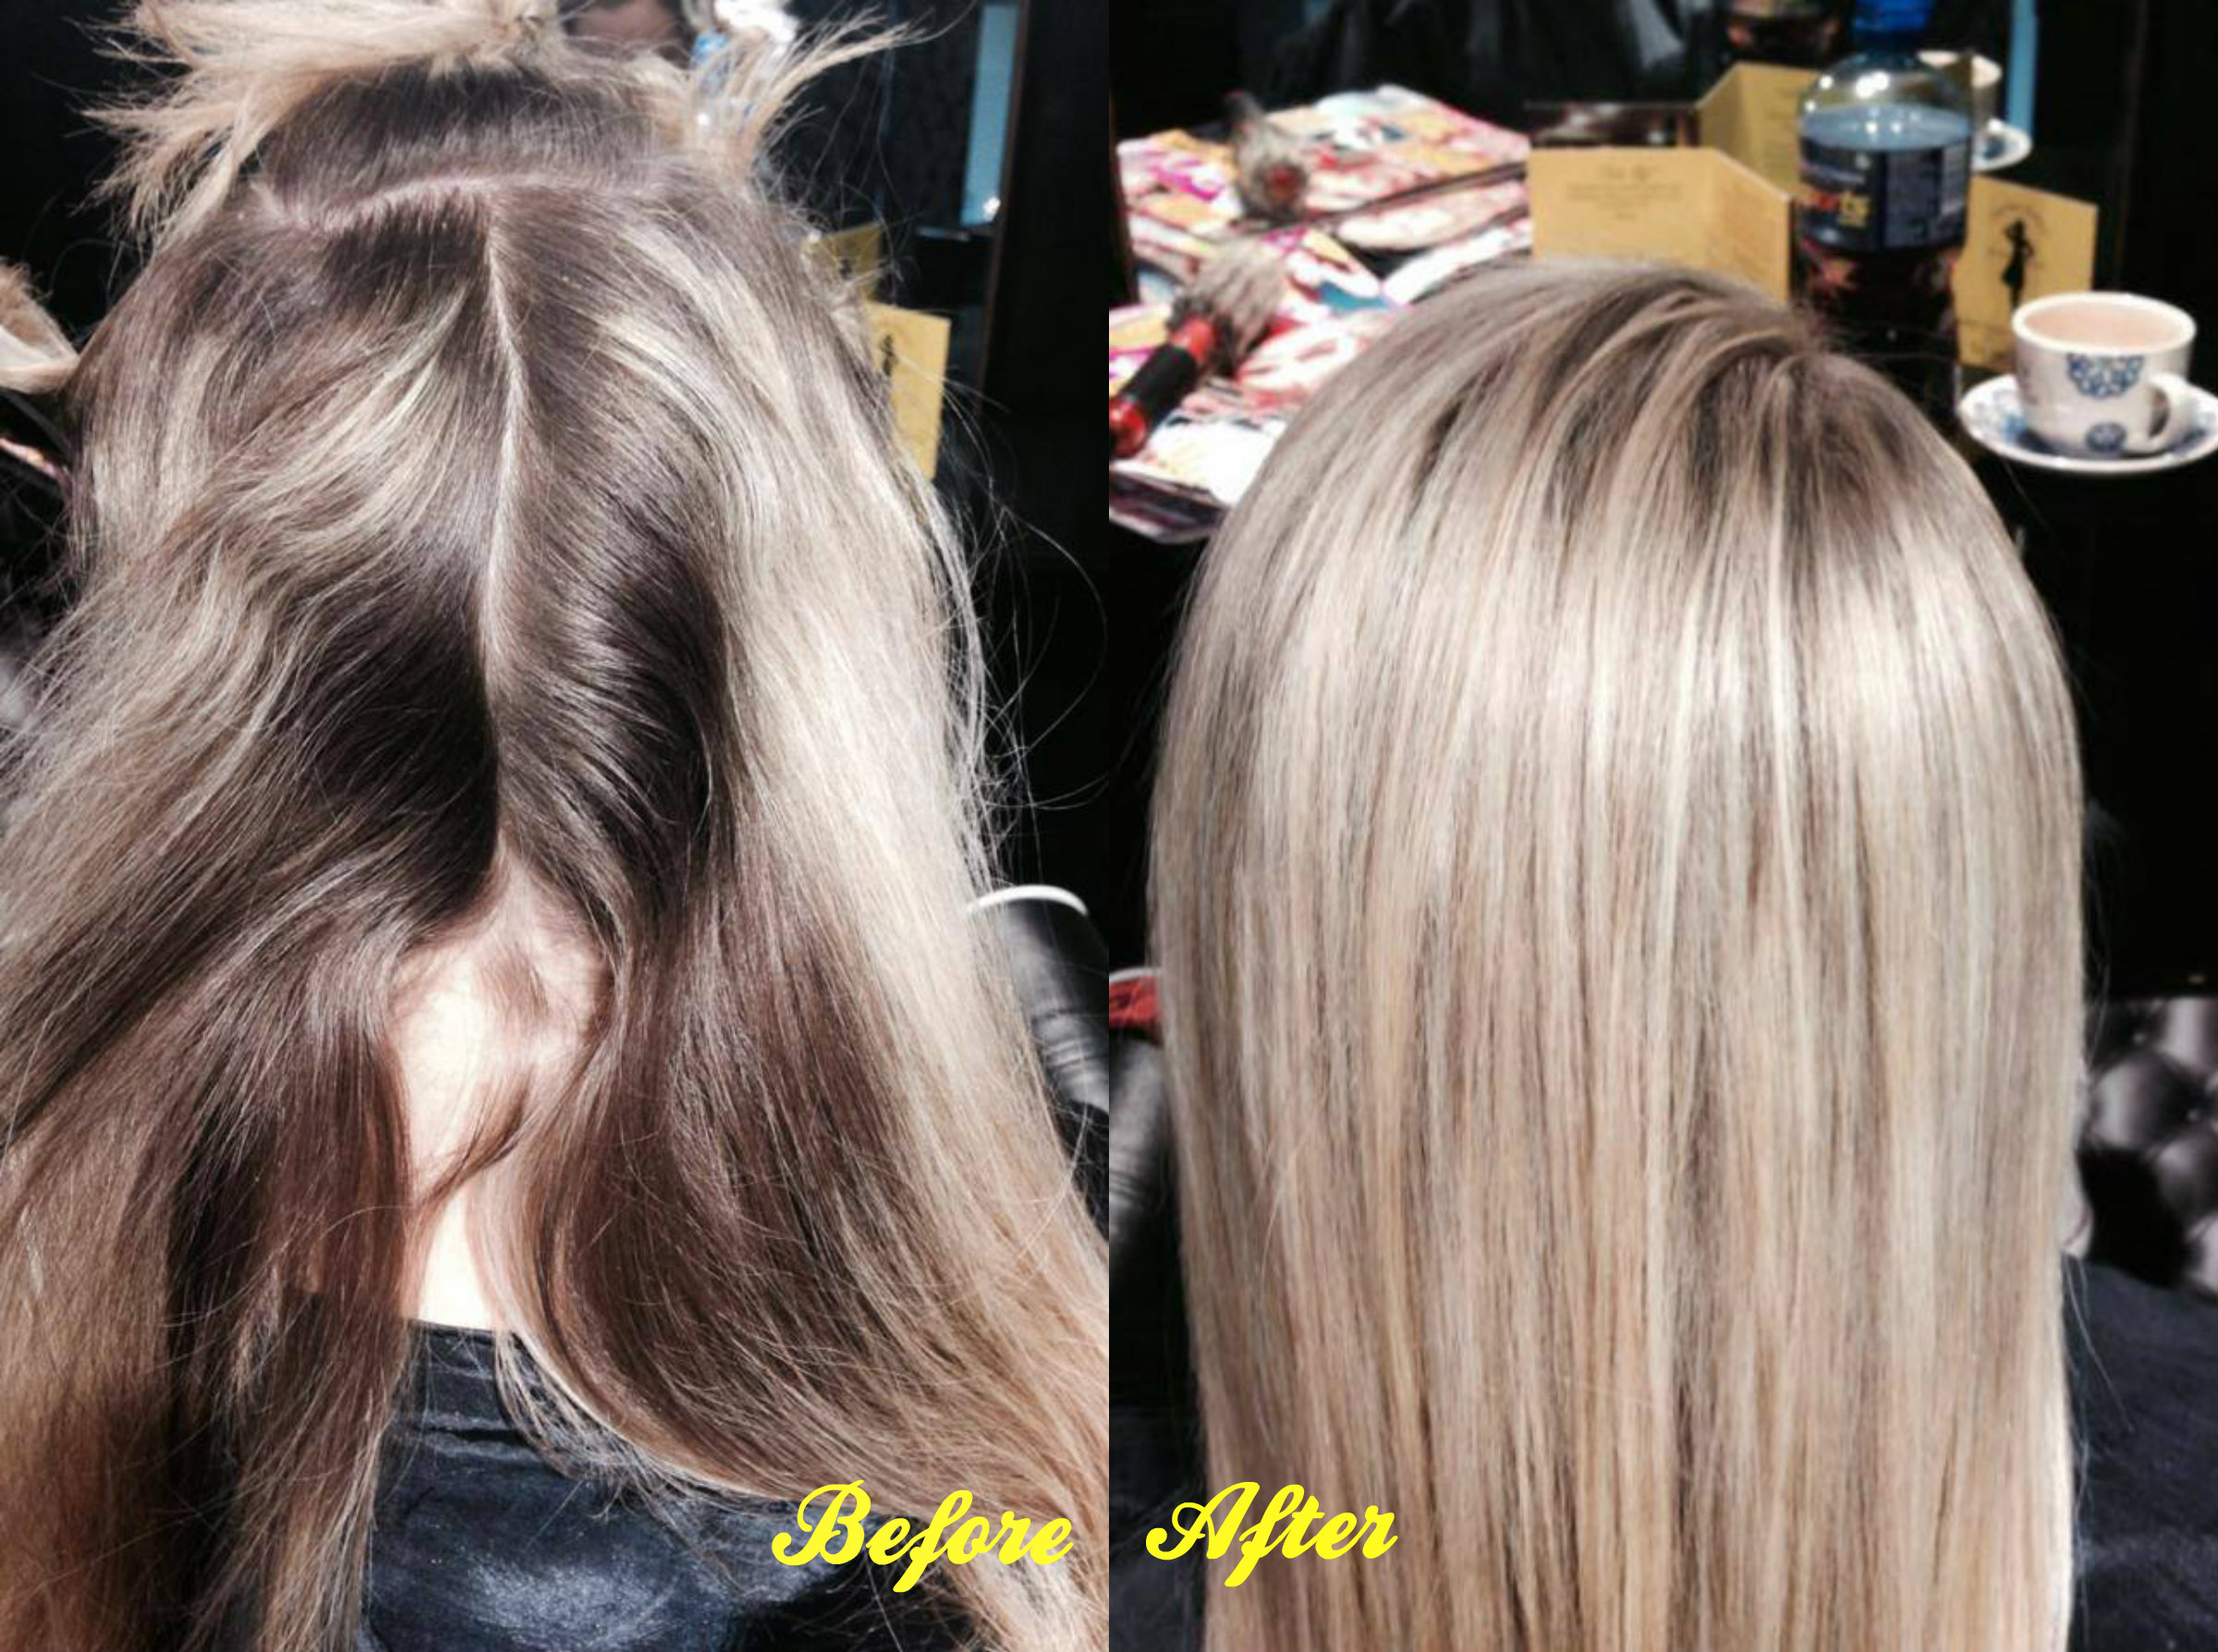 Before and after the hair hostess btx botox for hair pmusecretfo Image collections